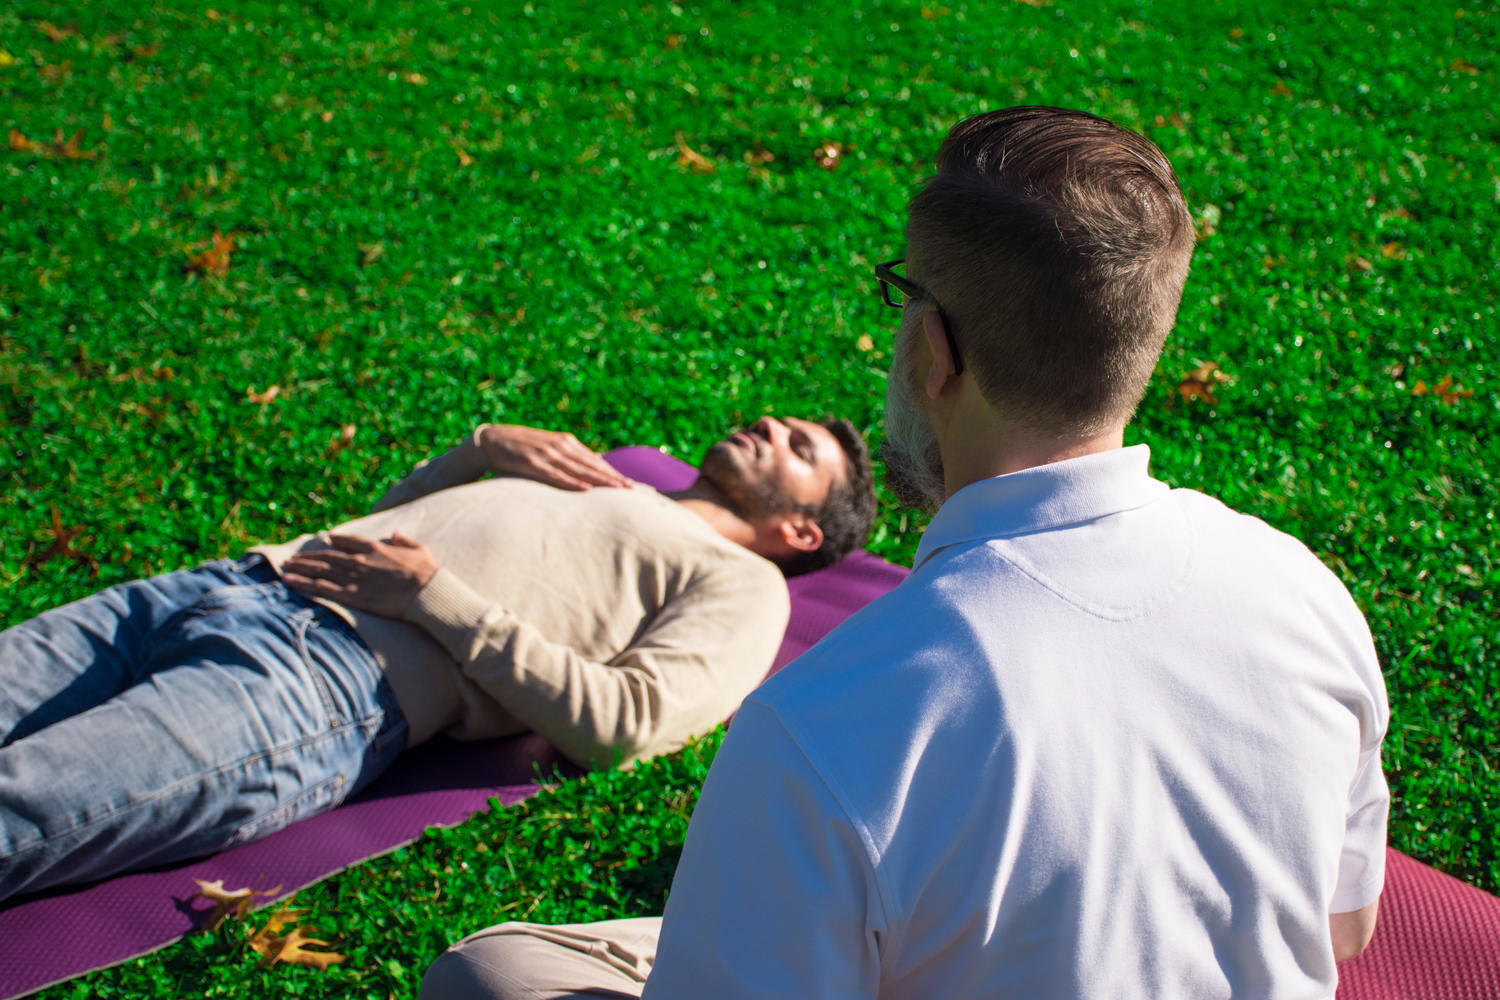 guided-relaxation-centered-presence-60.jpg